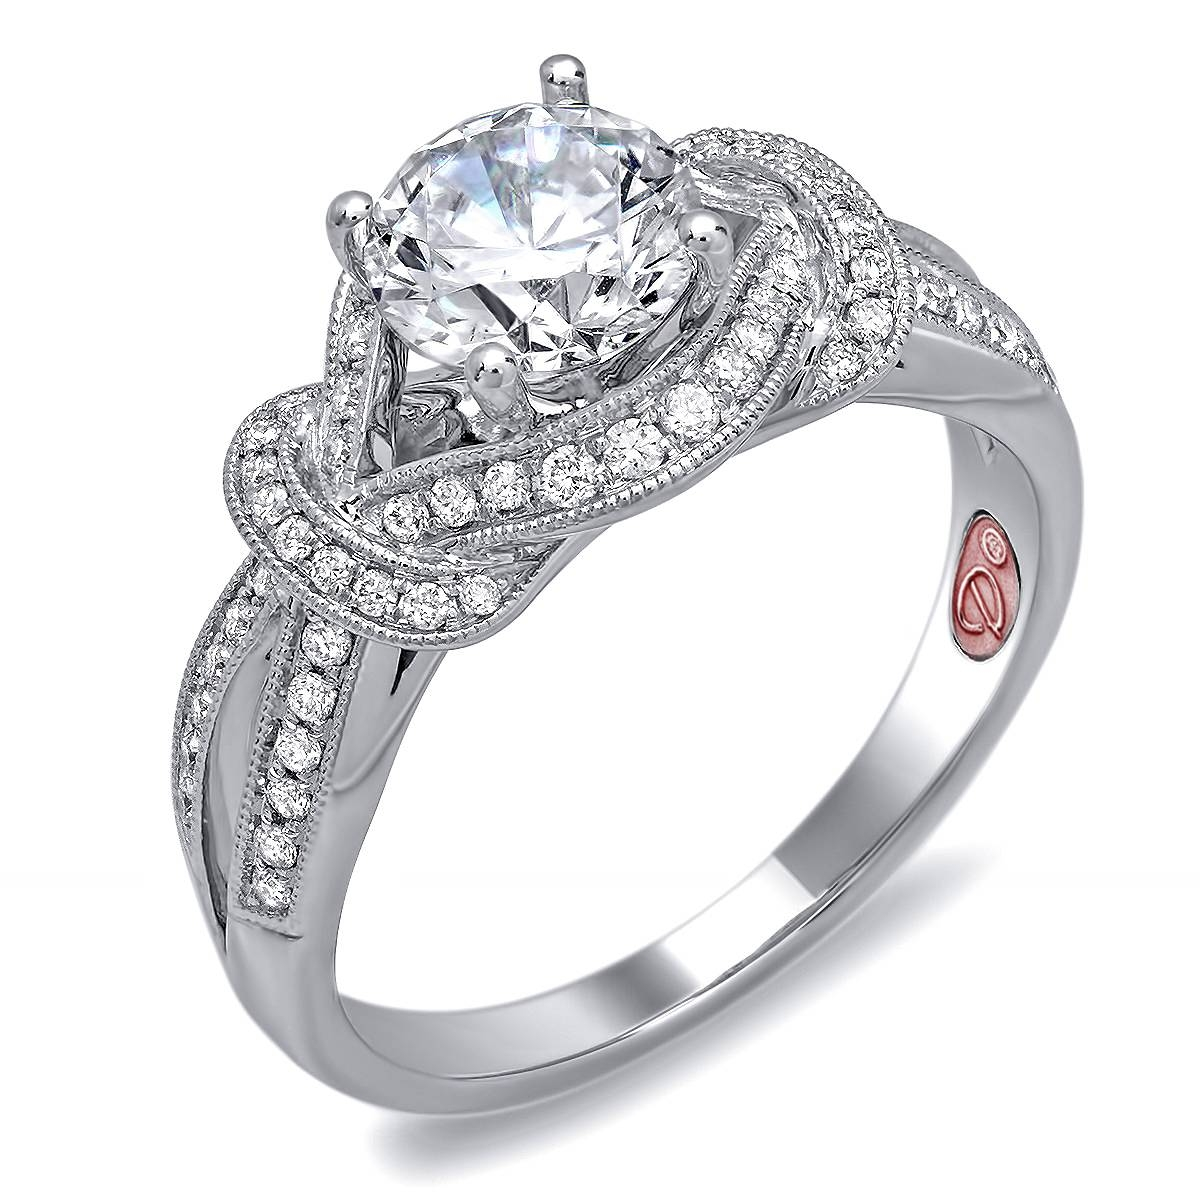 Knot Diamond Bridal Ring | Demarco Bridal Jewelry Official Blog For Knot Engagement Rings (View 11 of 15)